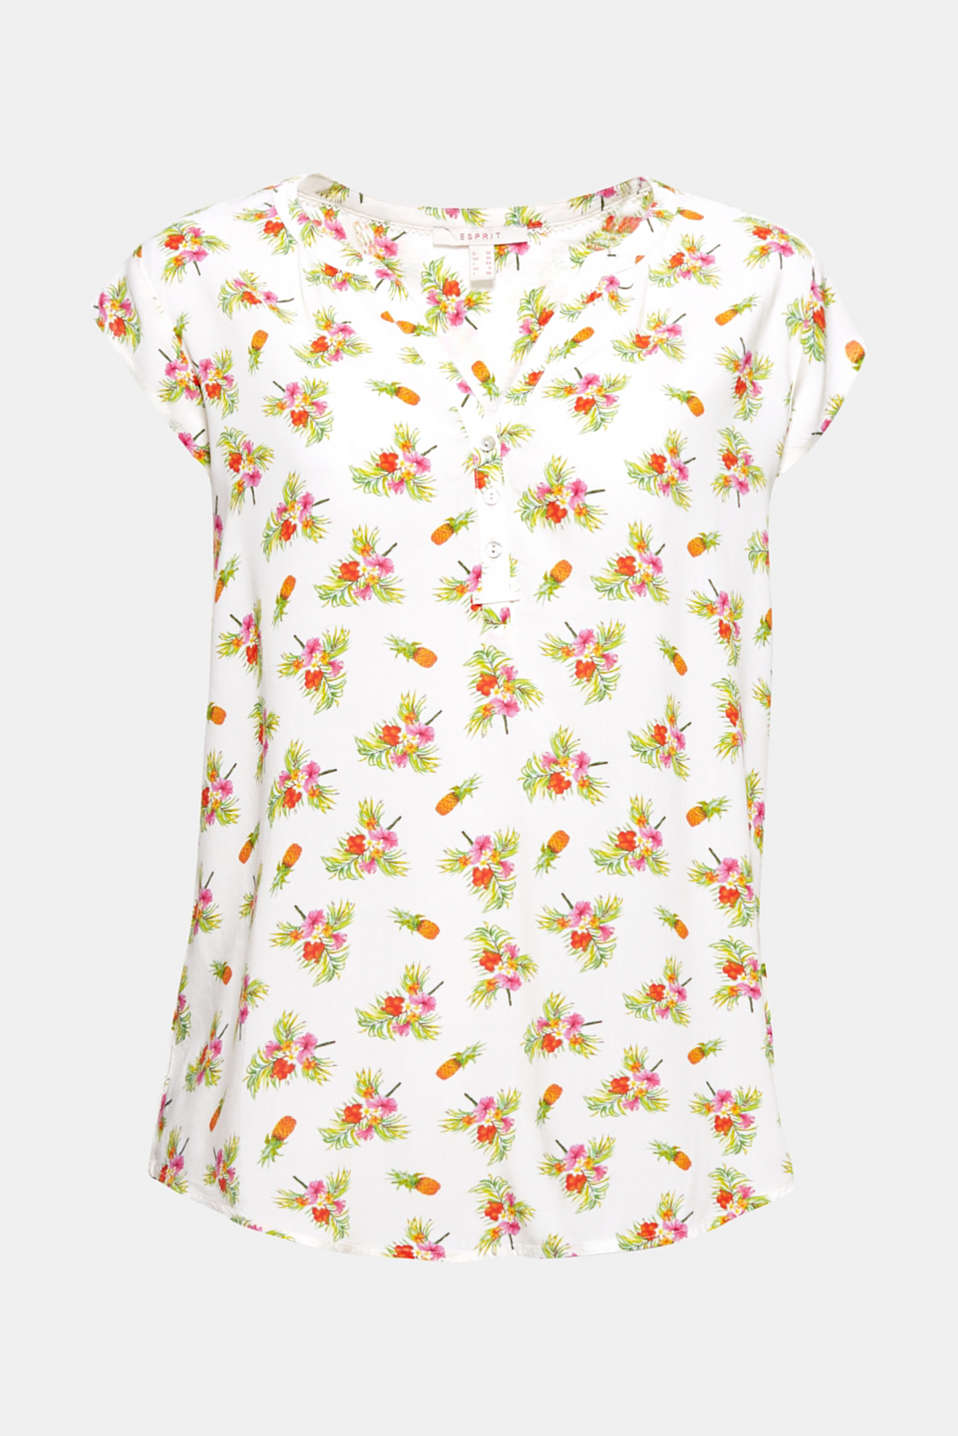 The all-over printed motifs add a colourful summer flair to this blouse with a Henley neckline.